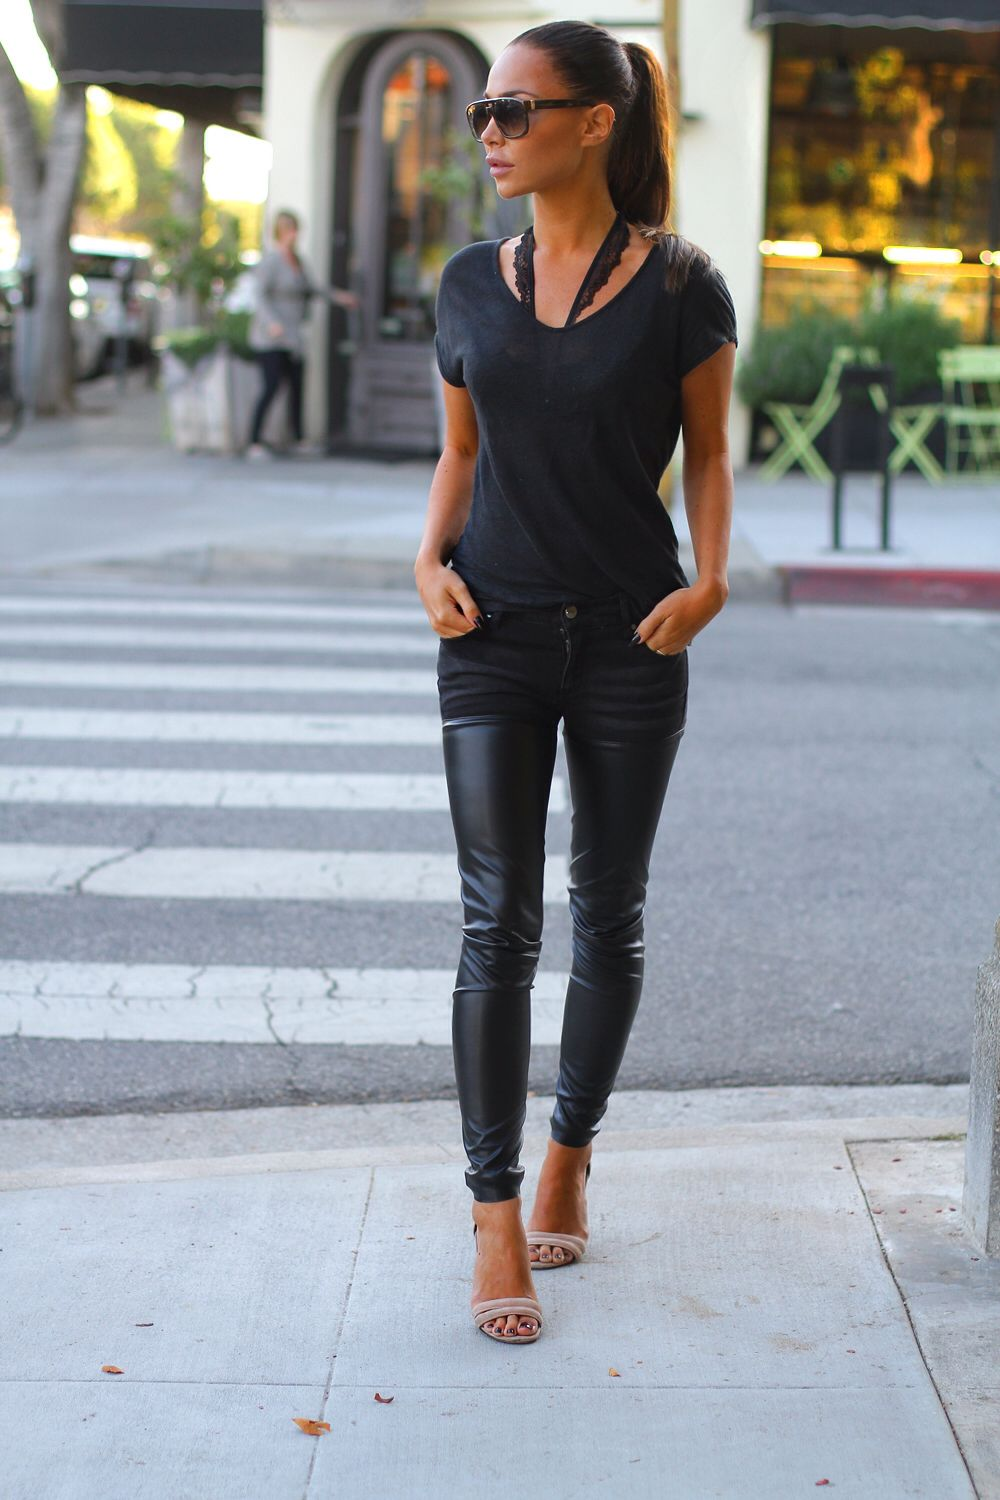 954d44cf46 Leather pants...nuff said! These are my absolute FAV to wear with ...